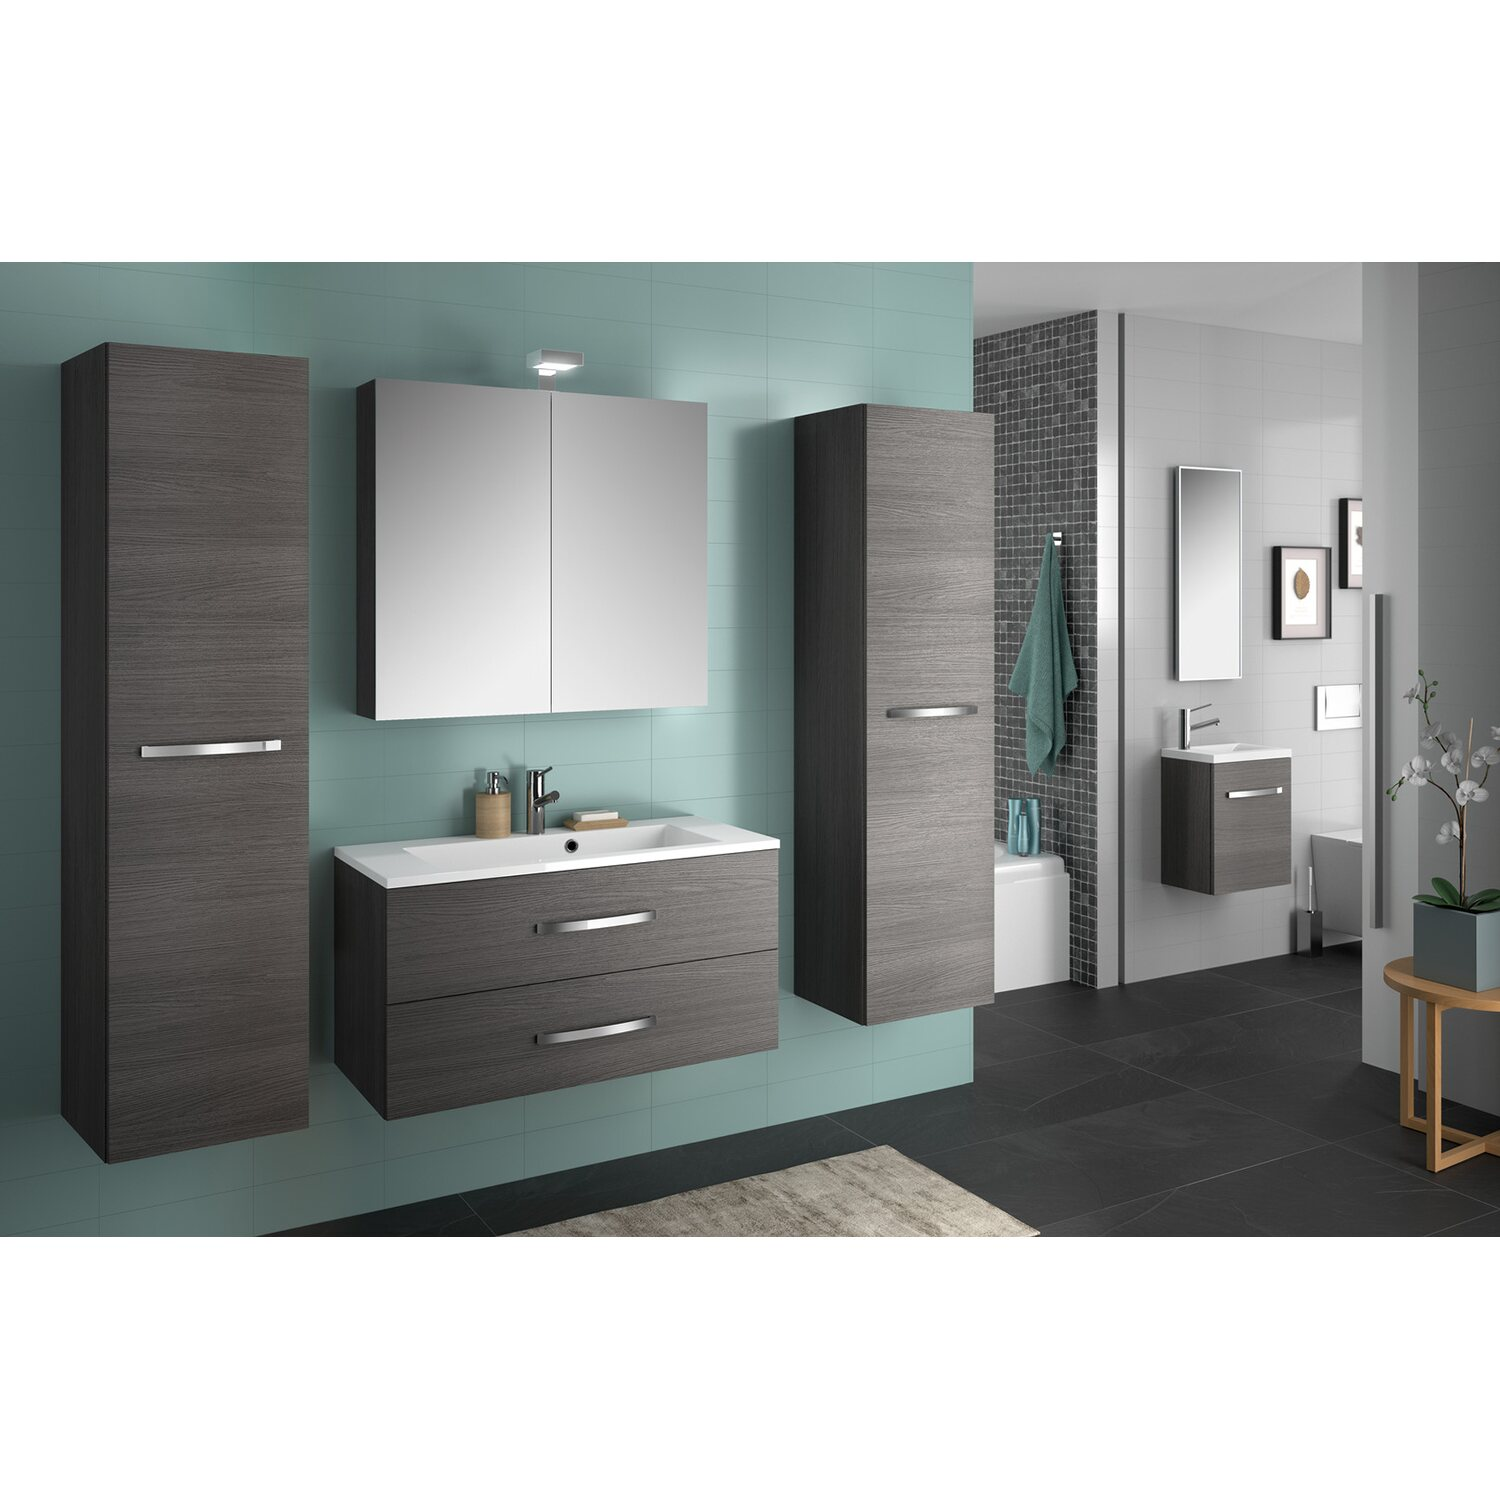 allibert badm bel set adept eiche grau 90 cm 5 teilig eek. Black Bedroom Furniture Sets. Home Design Ideas